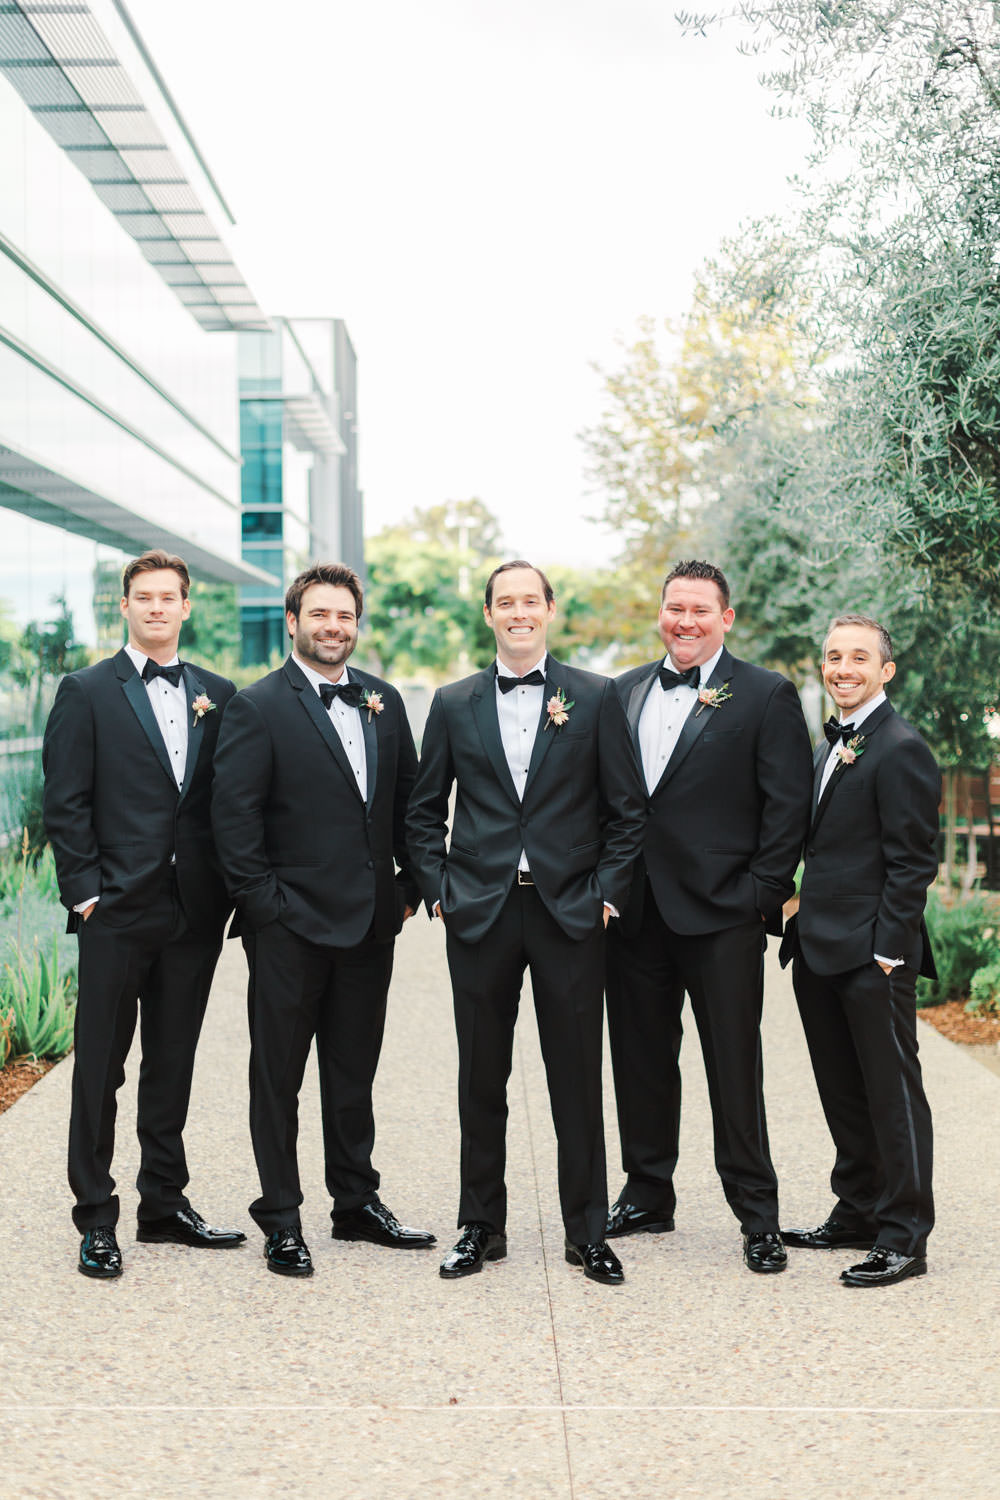 Groom with groomsmen at Green Acre Campus Pointe, Cavin Elizabeth Photography